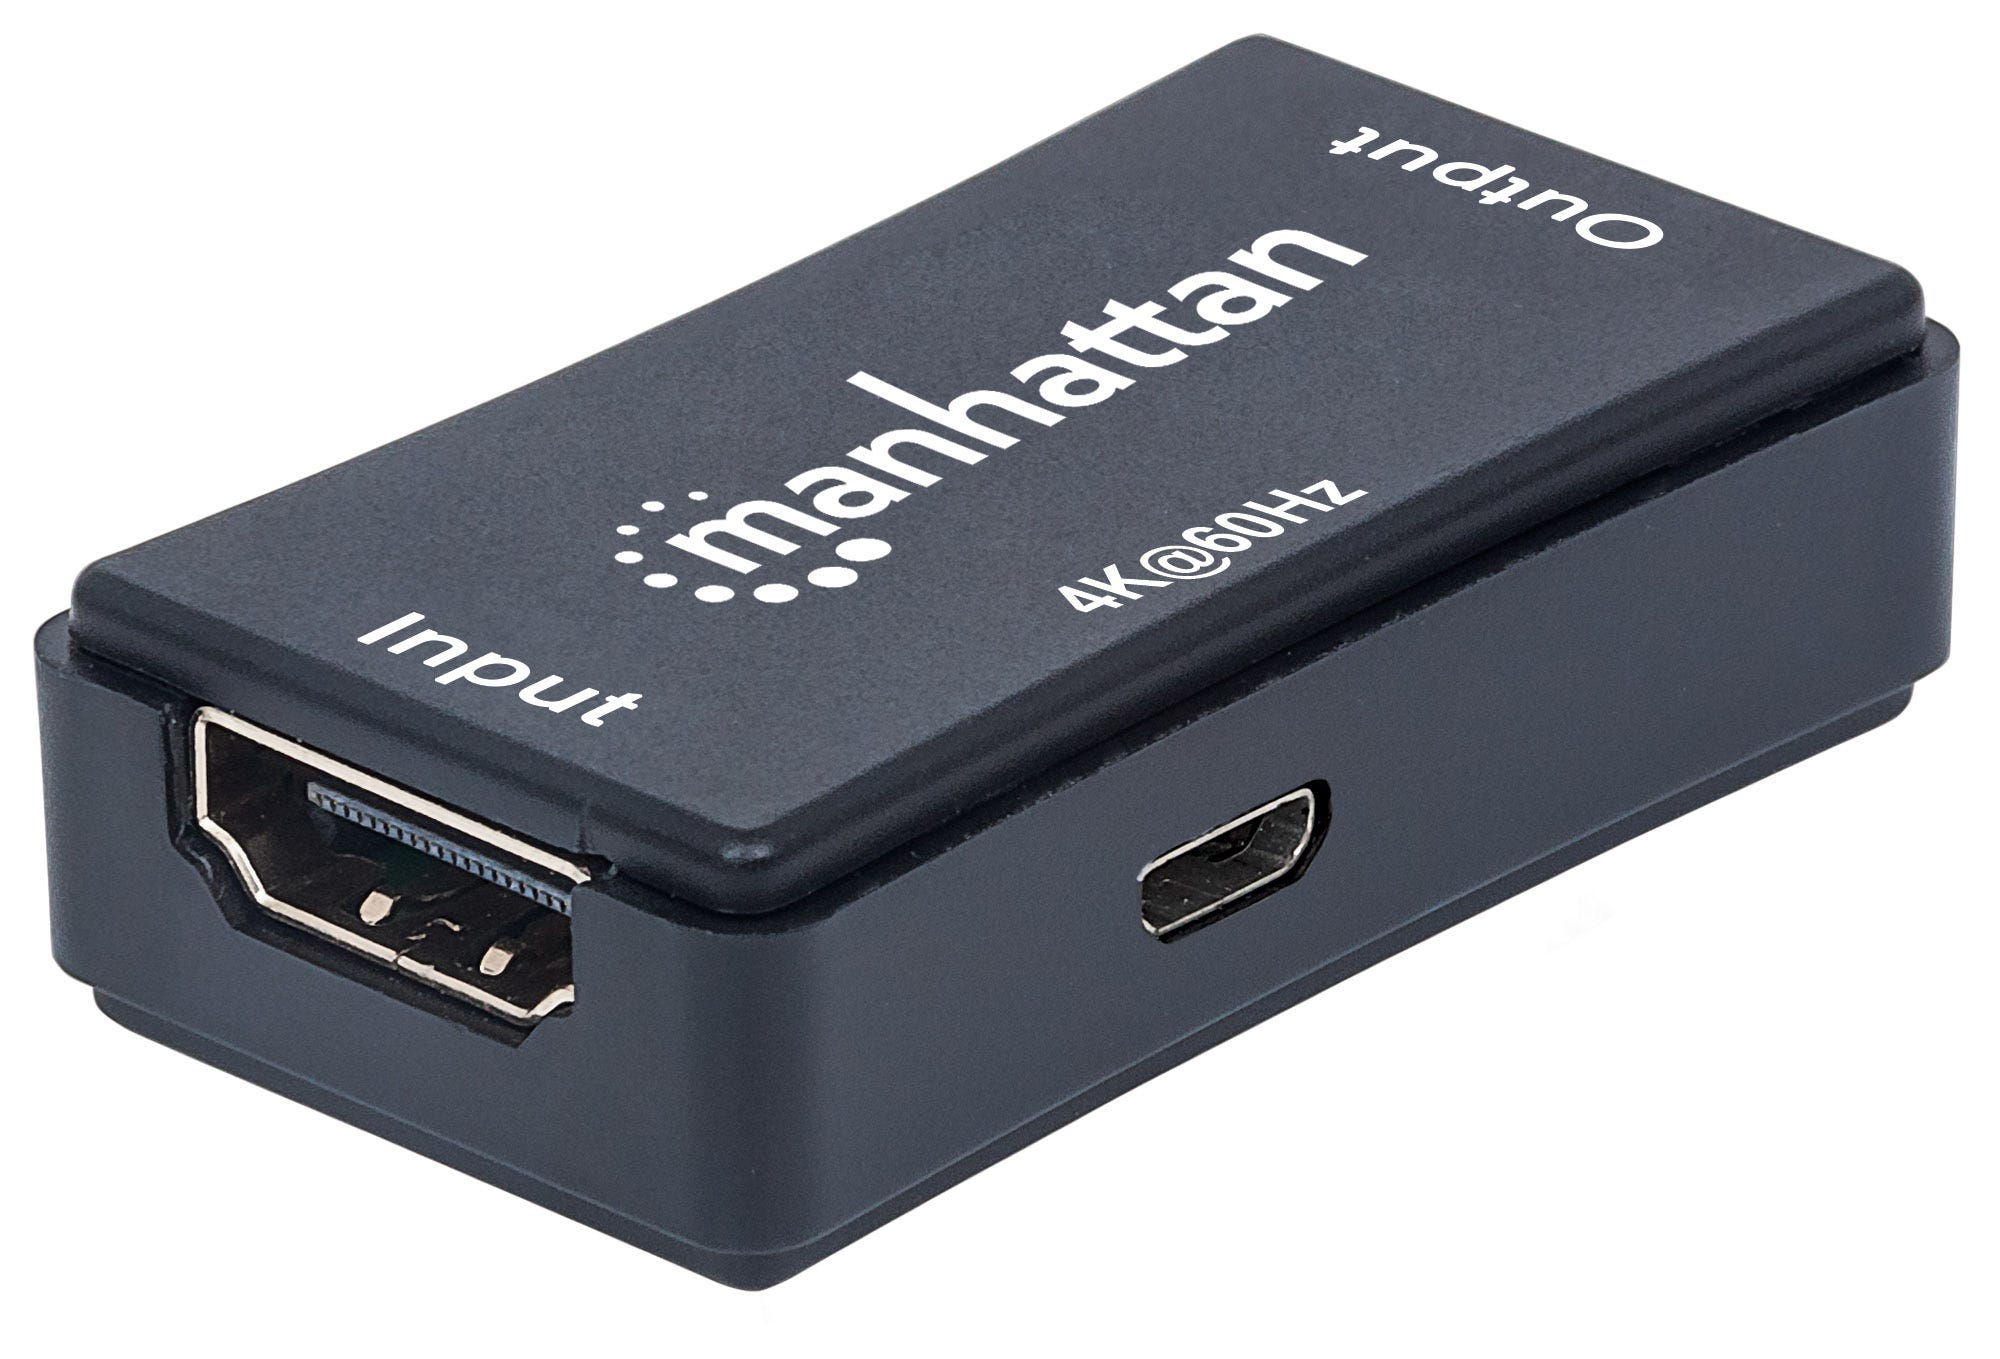 Manhattan 4K HDMI Repeater, Active, Distances up to 40m, Black